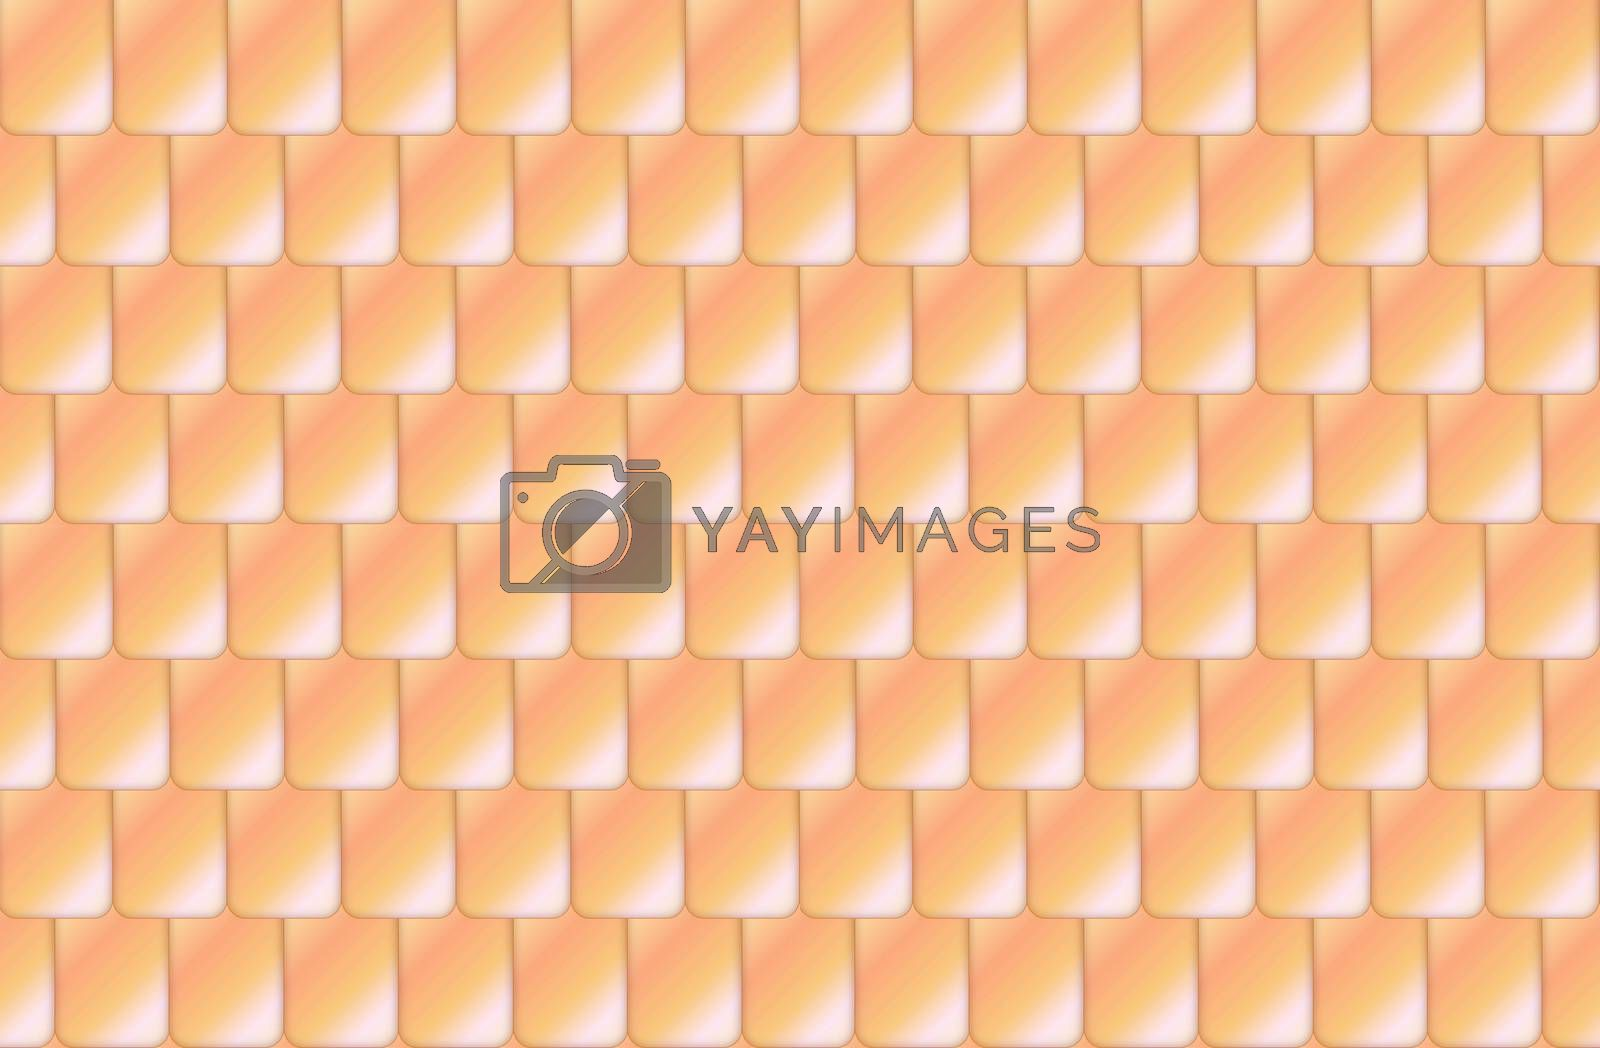 Seamless straw color roof tiles by Elenaphotos21